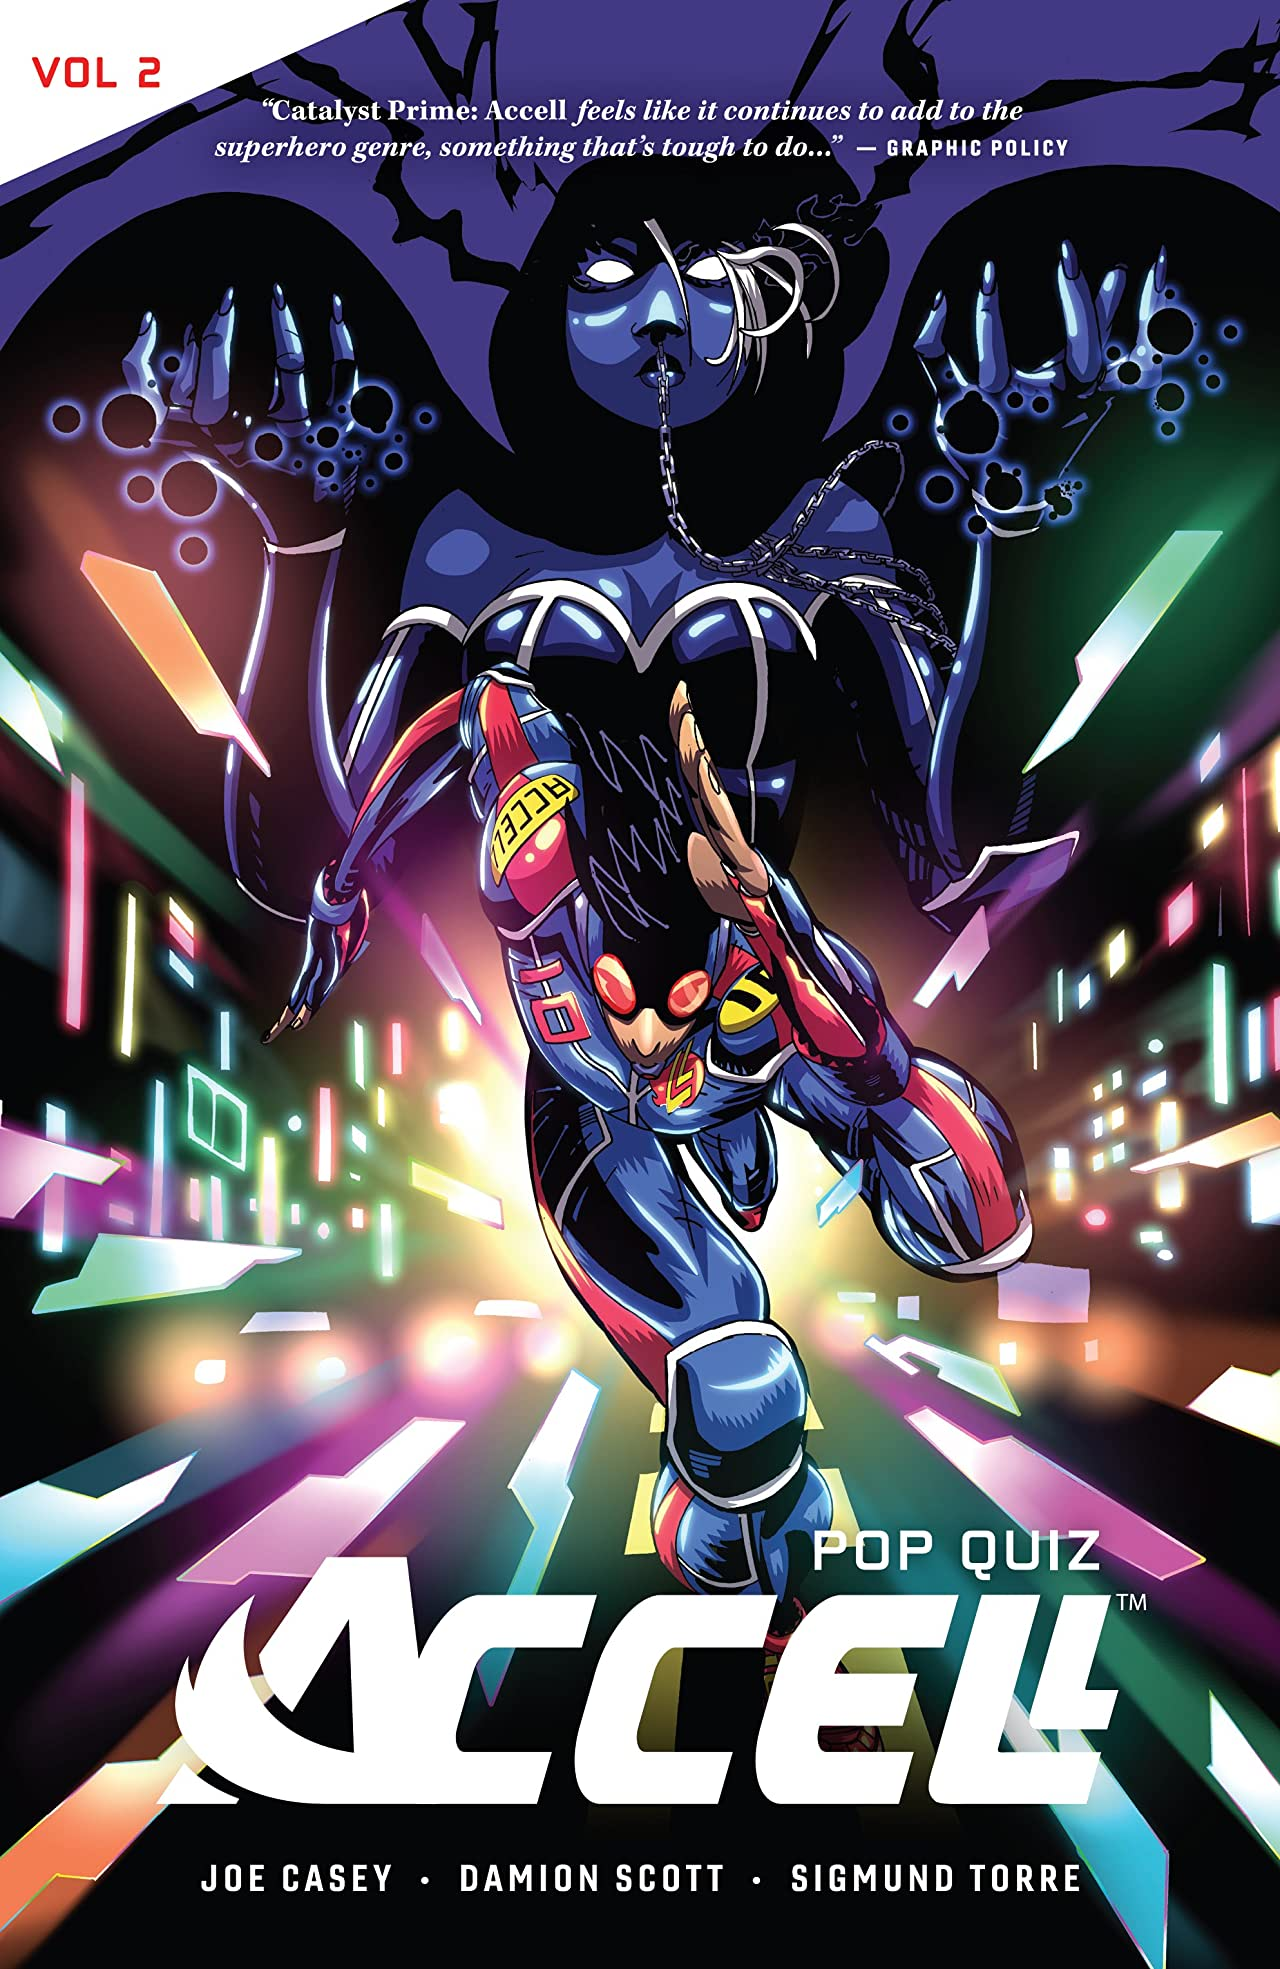 Accell Vol. 2: Pop Quiz